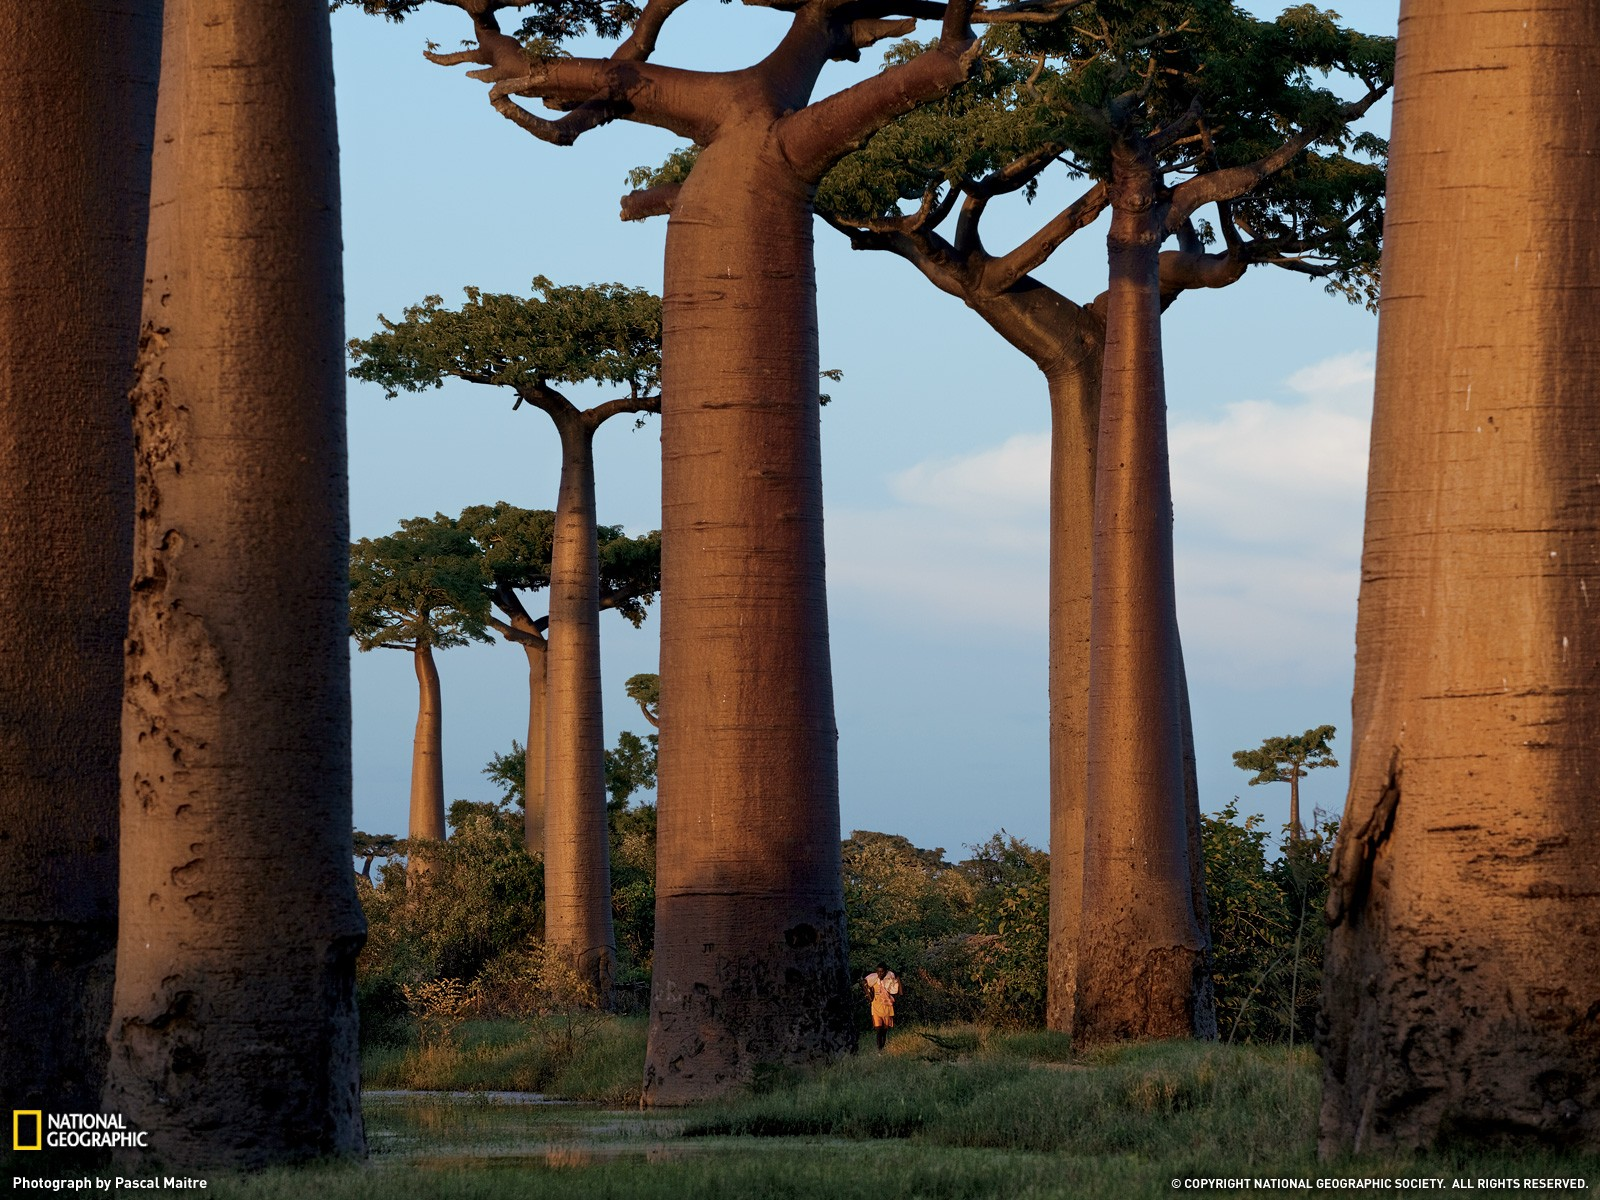 4k Wallpaper 3d National Geographic National Geographic Trees Madagascar Wallpapers Hd